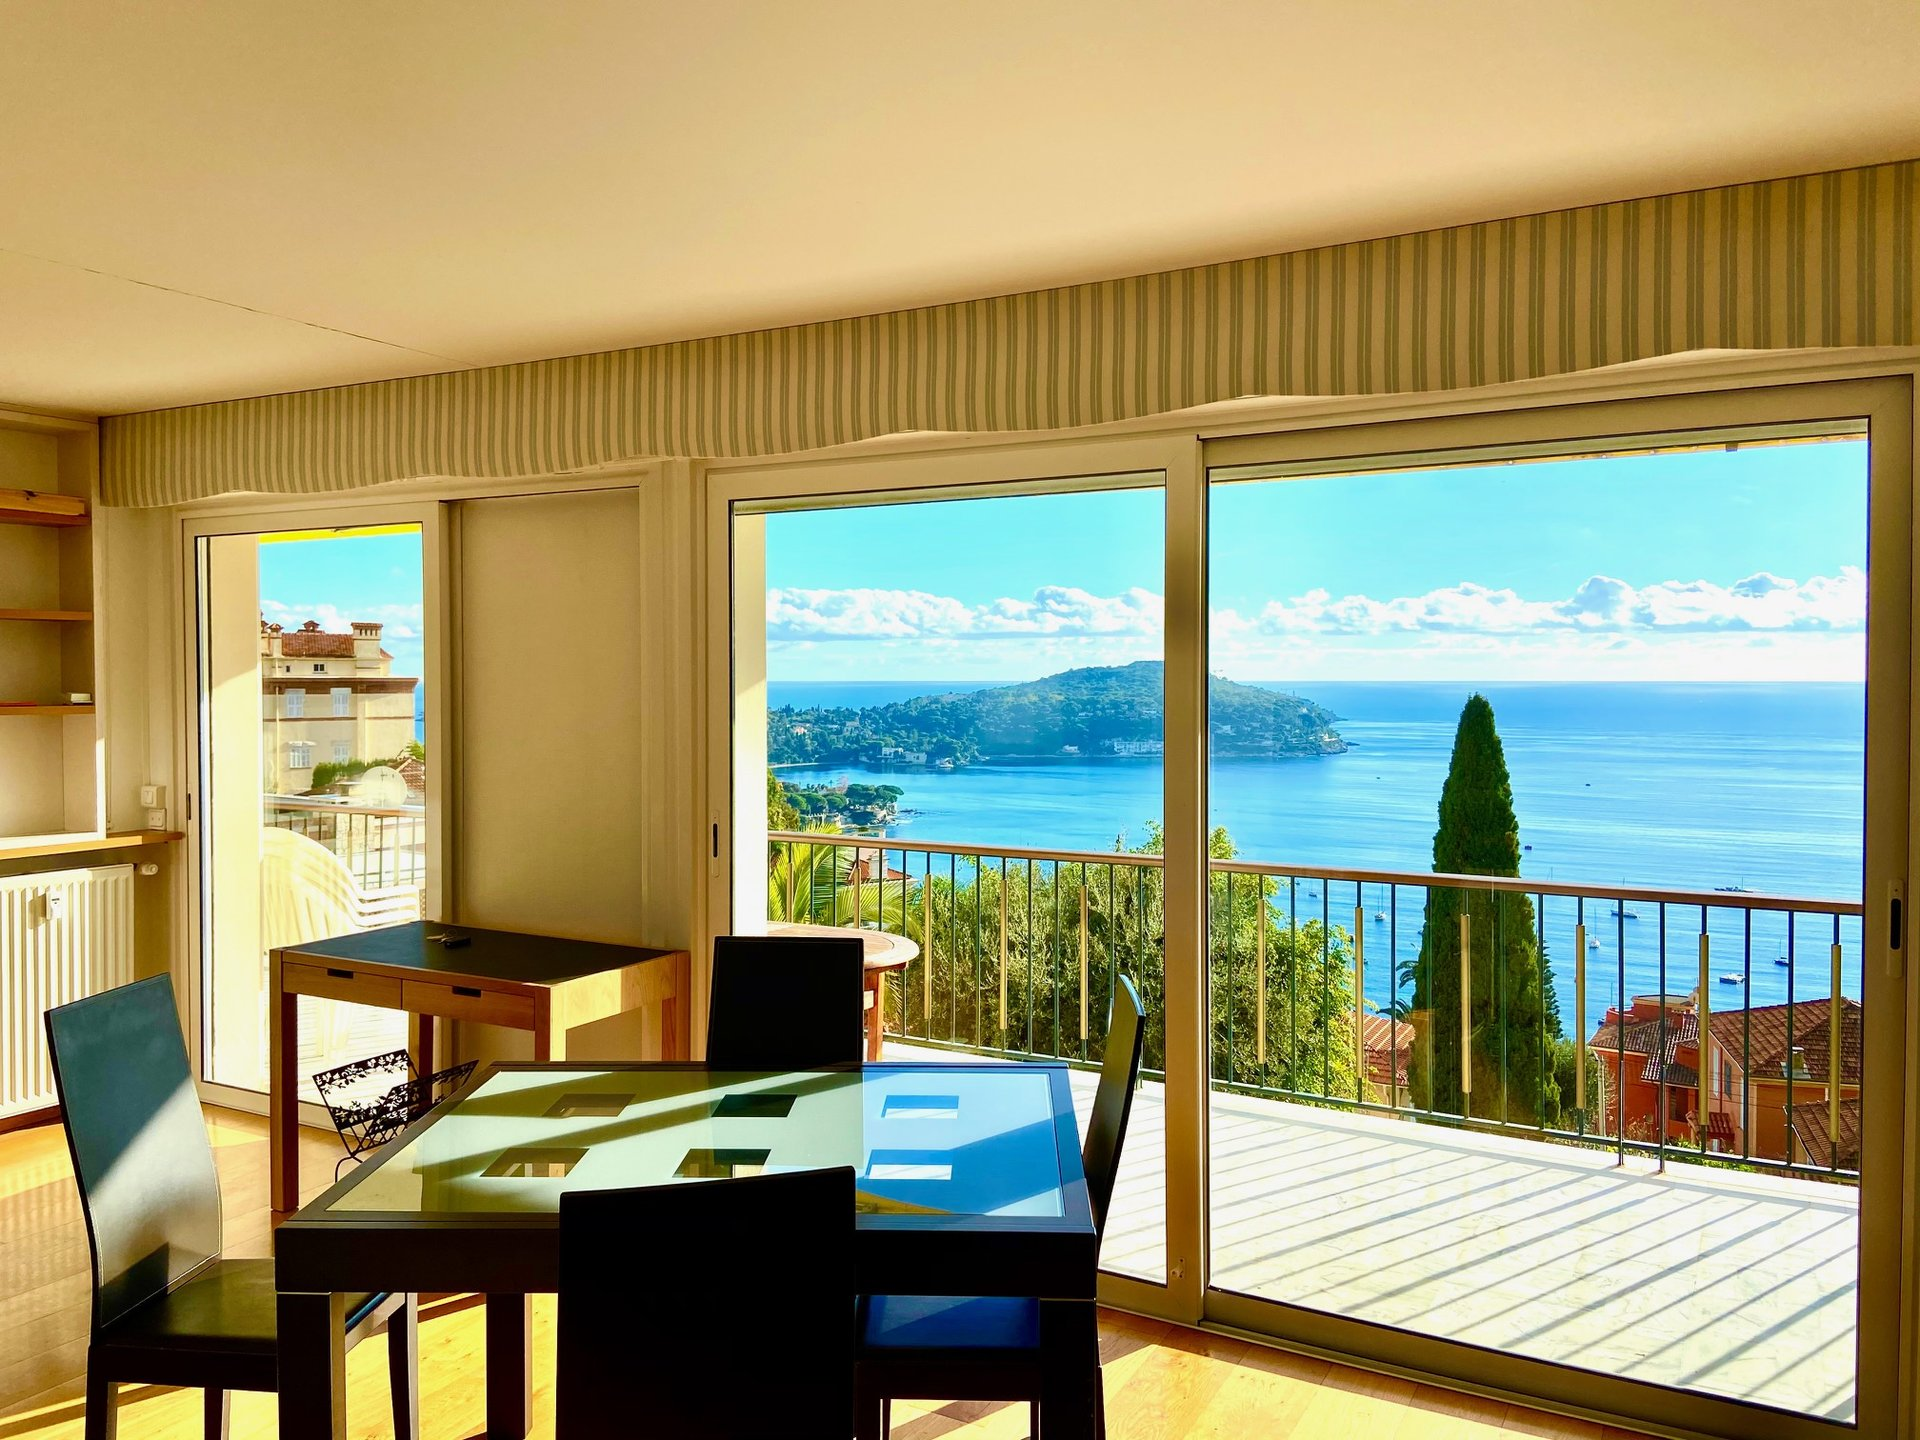 2 BEDROOMS APPARTMENT FOR RENT IN VILLEFRANCHE